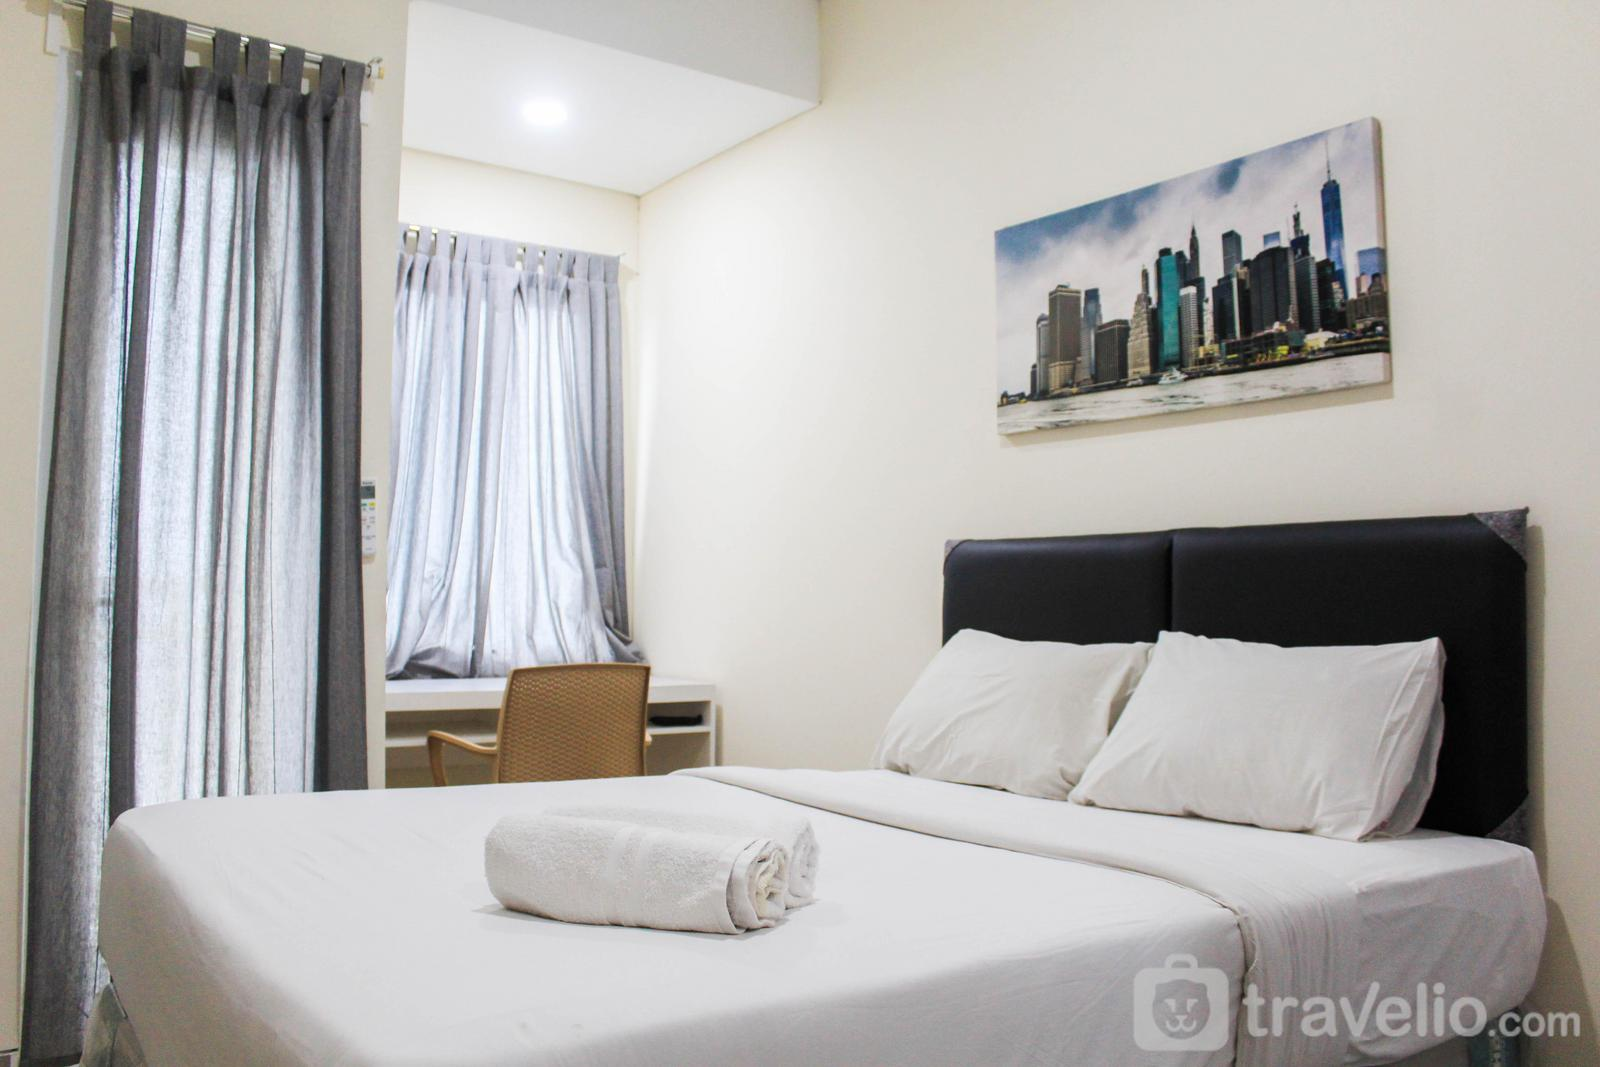 Apartemen B Residence - Cozy and Simply Studio Apartment at B Residence By Travelio